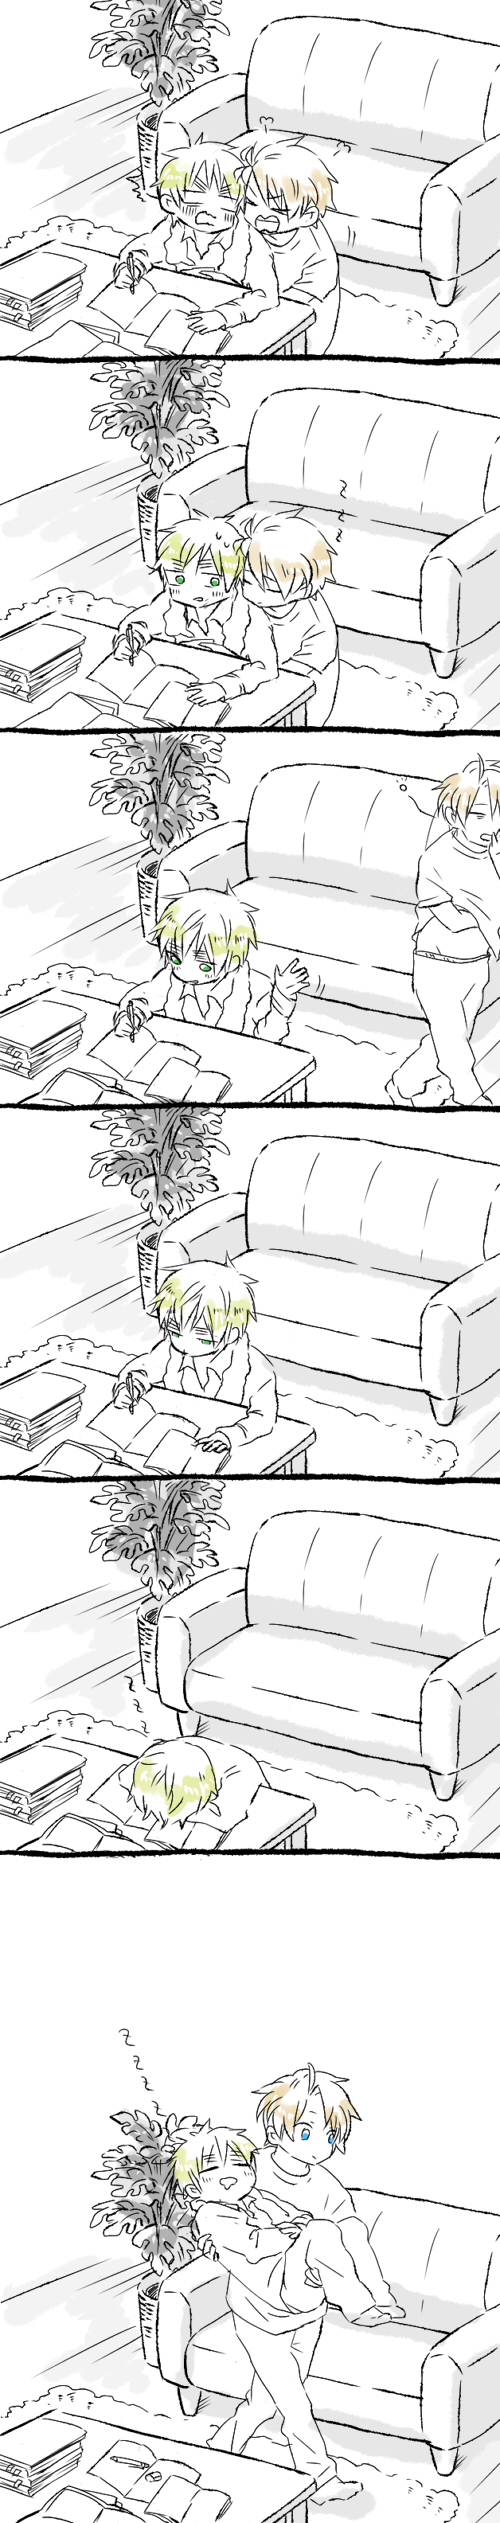 Tags: Anime, Axis Powers: Hetalia, United Kingdom, United States, Snore, Comic, Allied Forces